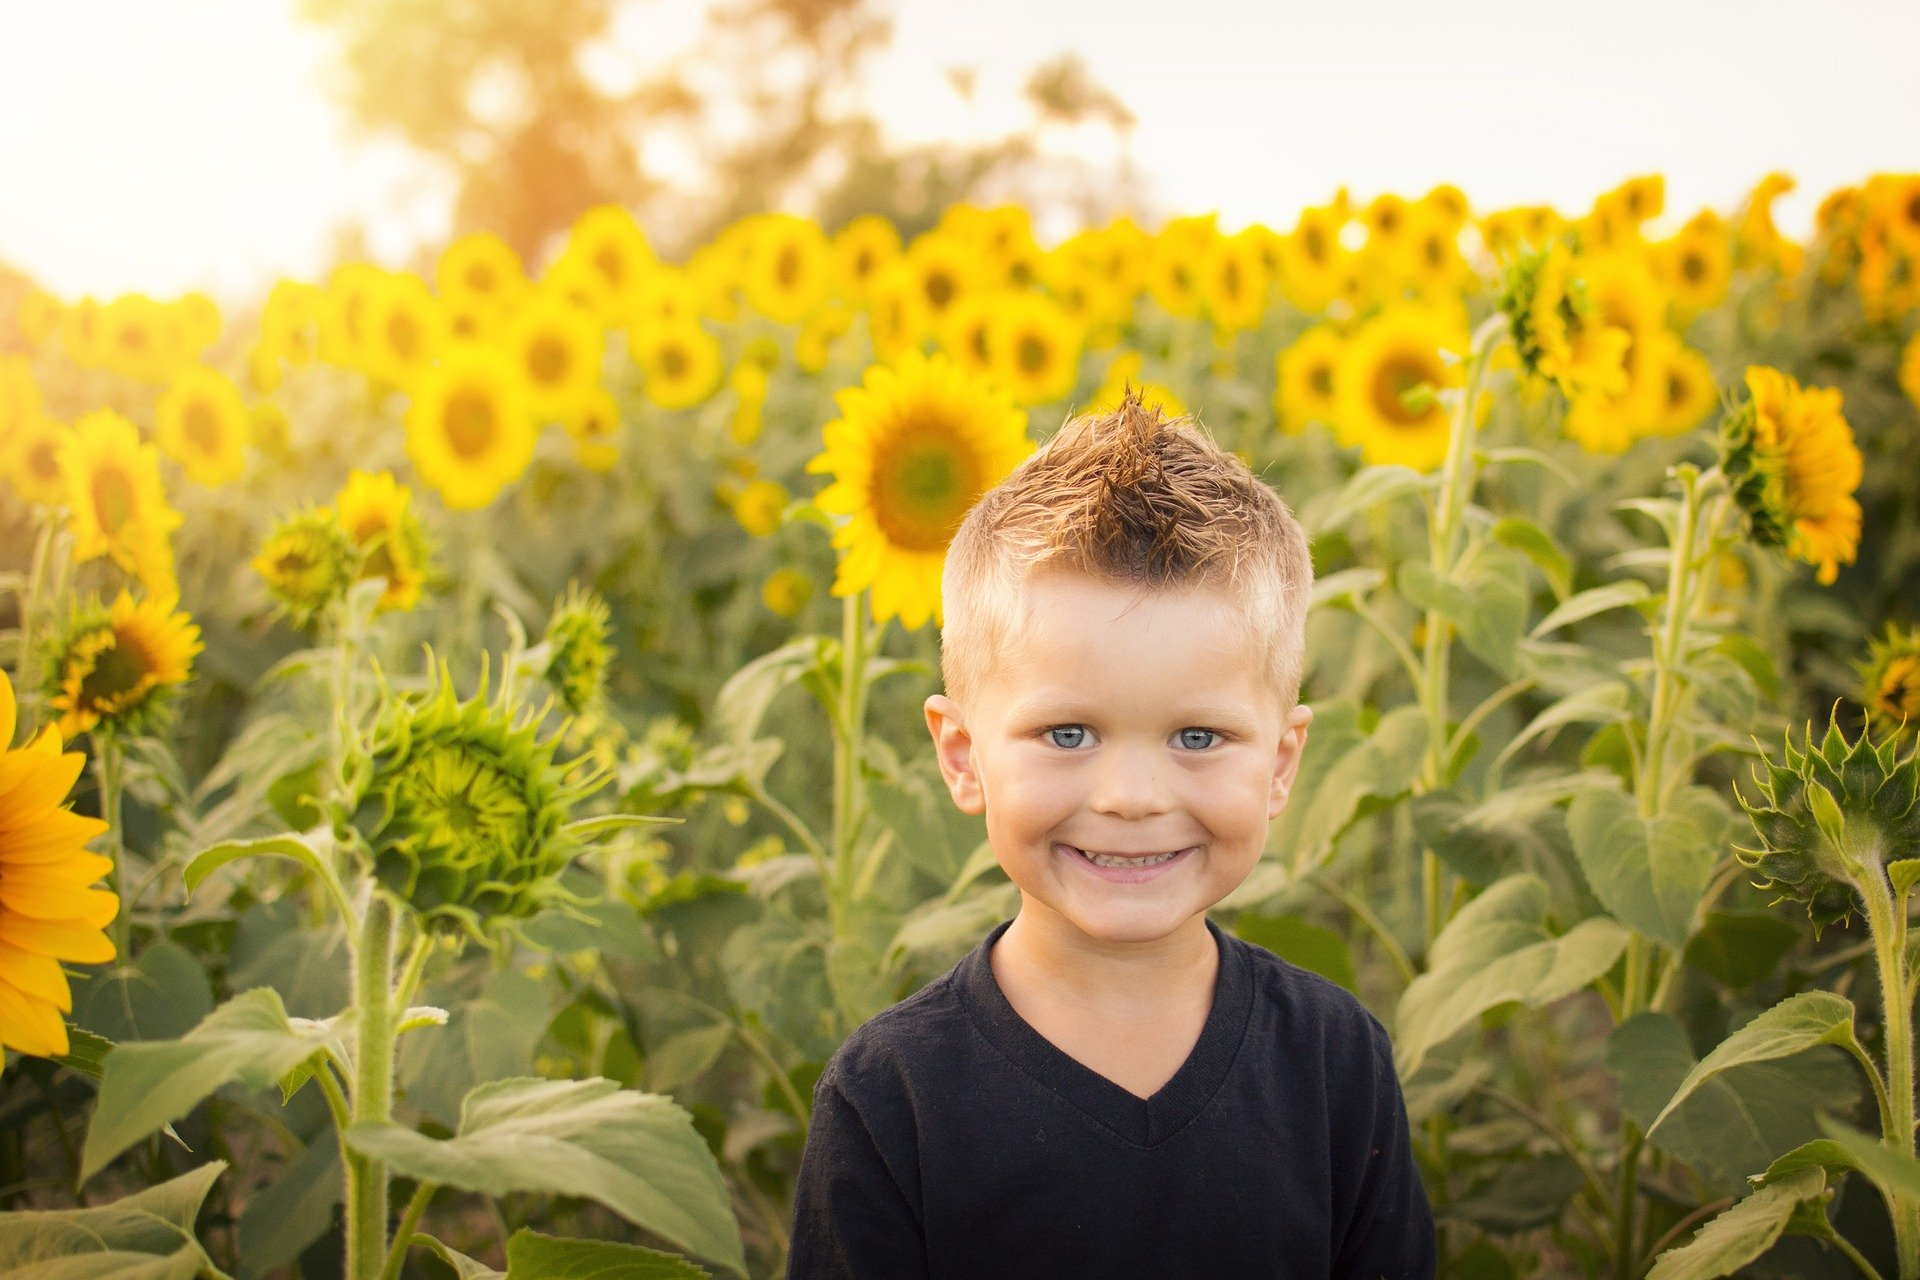 Mischievous little boy in a field of sunflowers. | Source: Pixabay